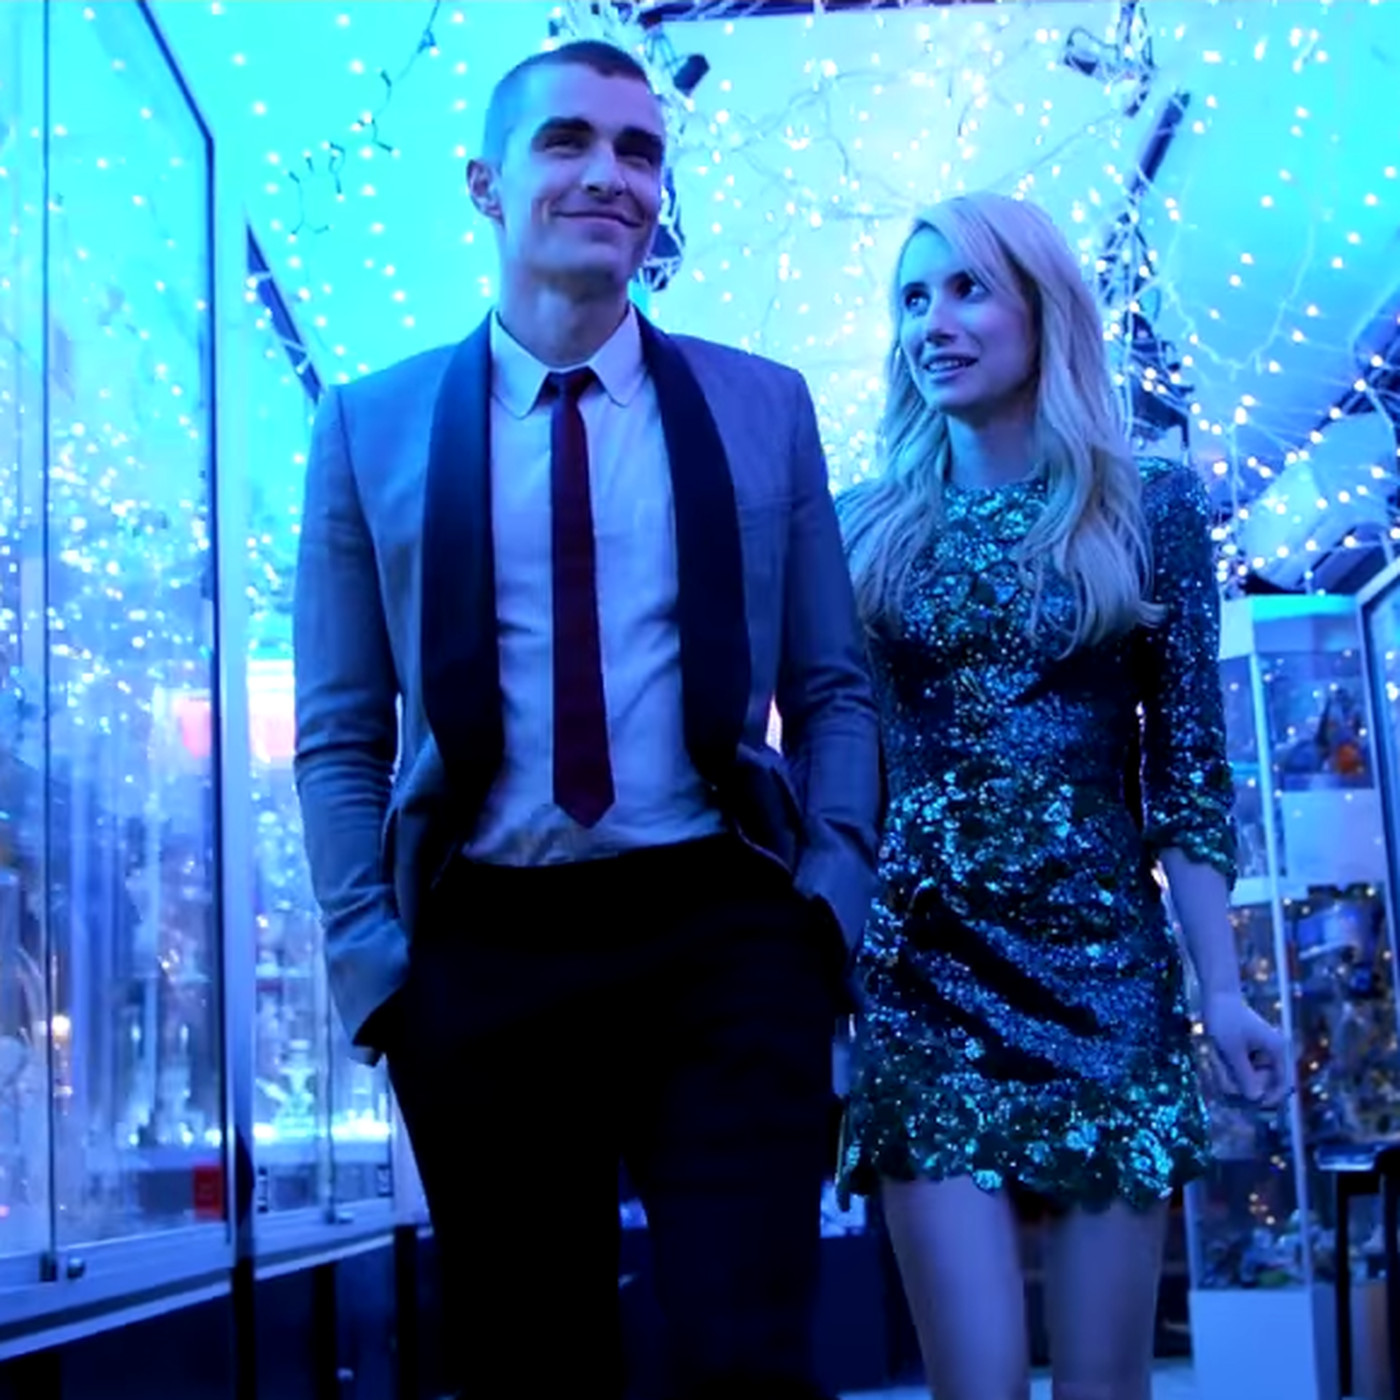 Nerve Is A Rare Warm Hearted Techno Thriller And The Perfect Teen Movie The Verge